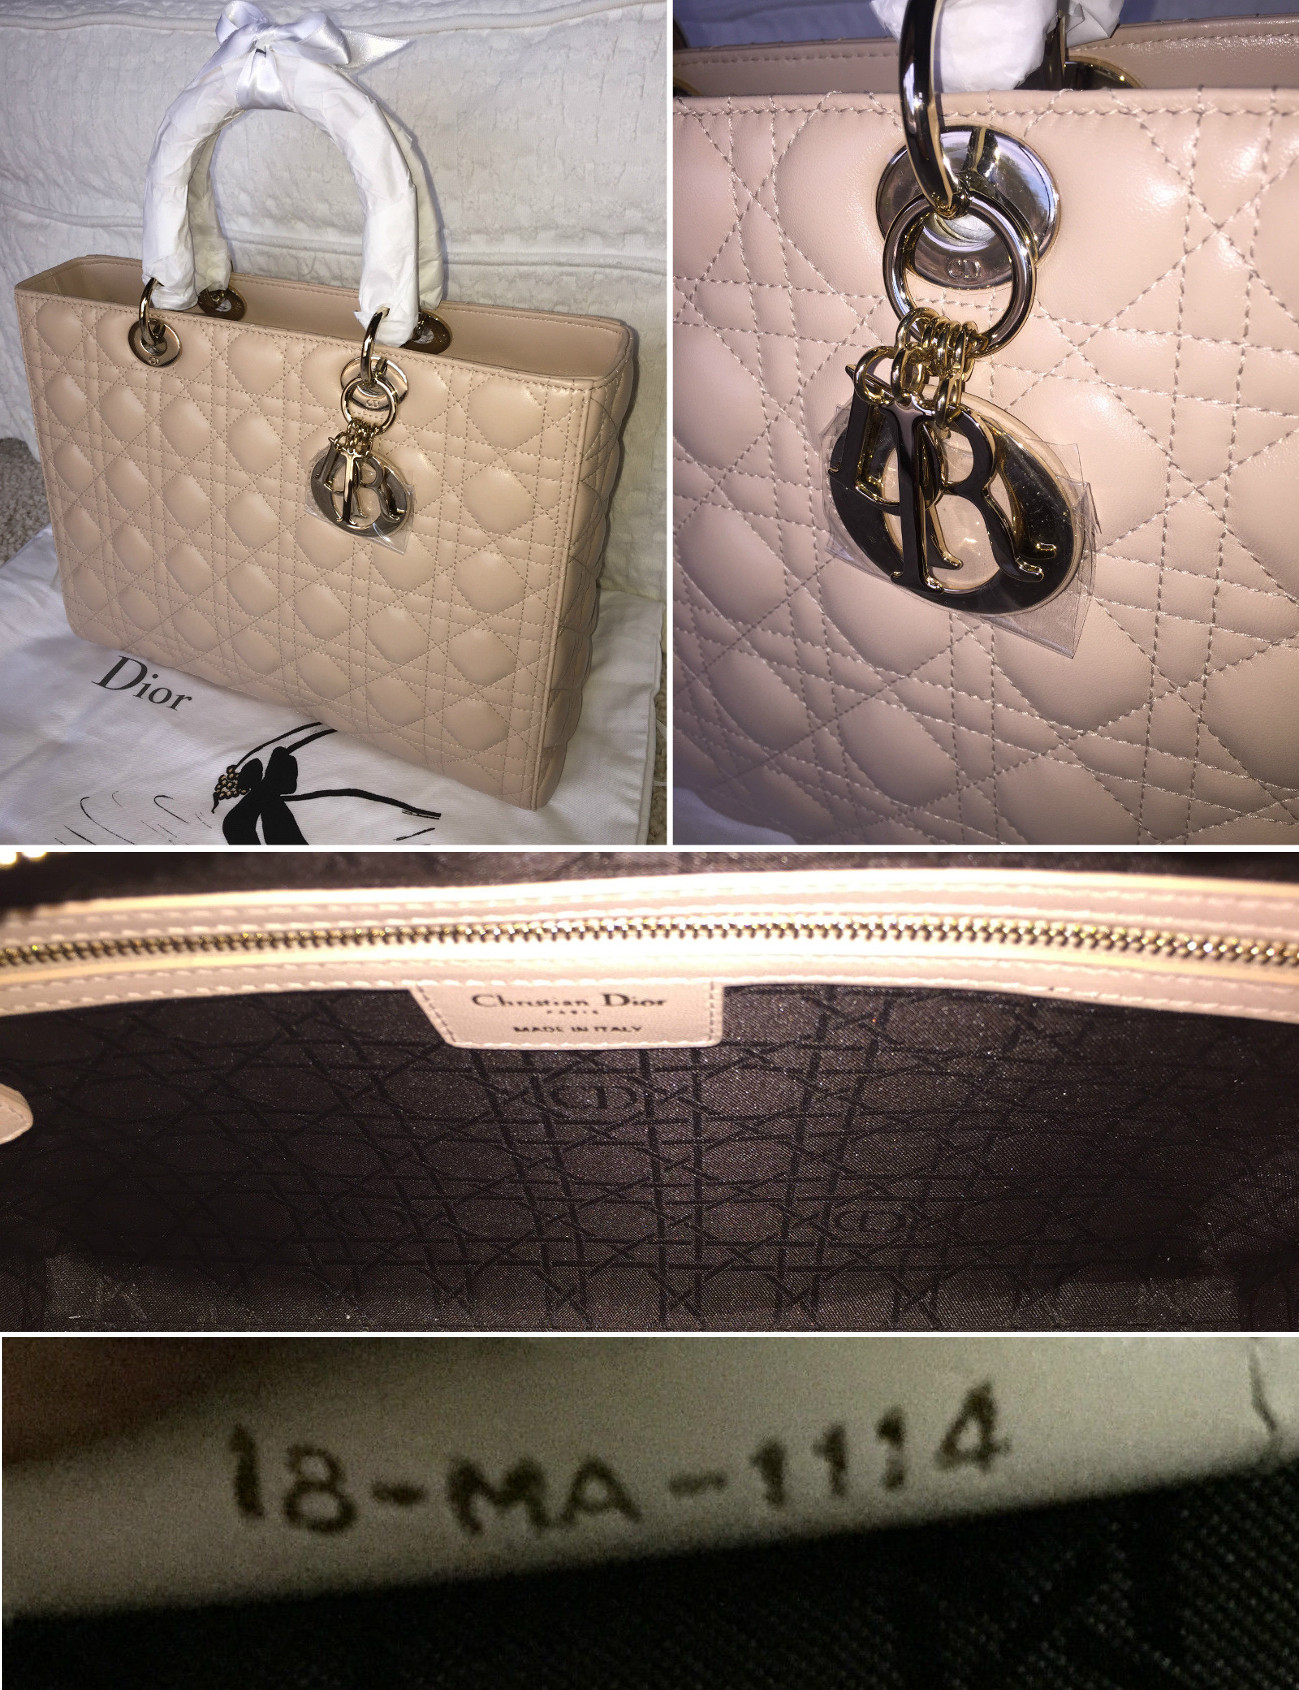 ysl cabas price - Christian Dior Bag Authentication Quiz | Lollipuff